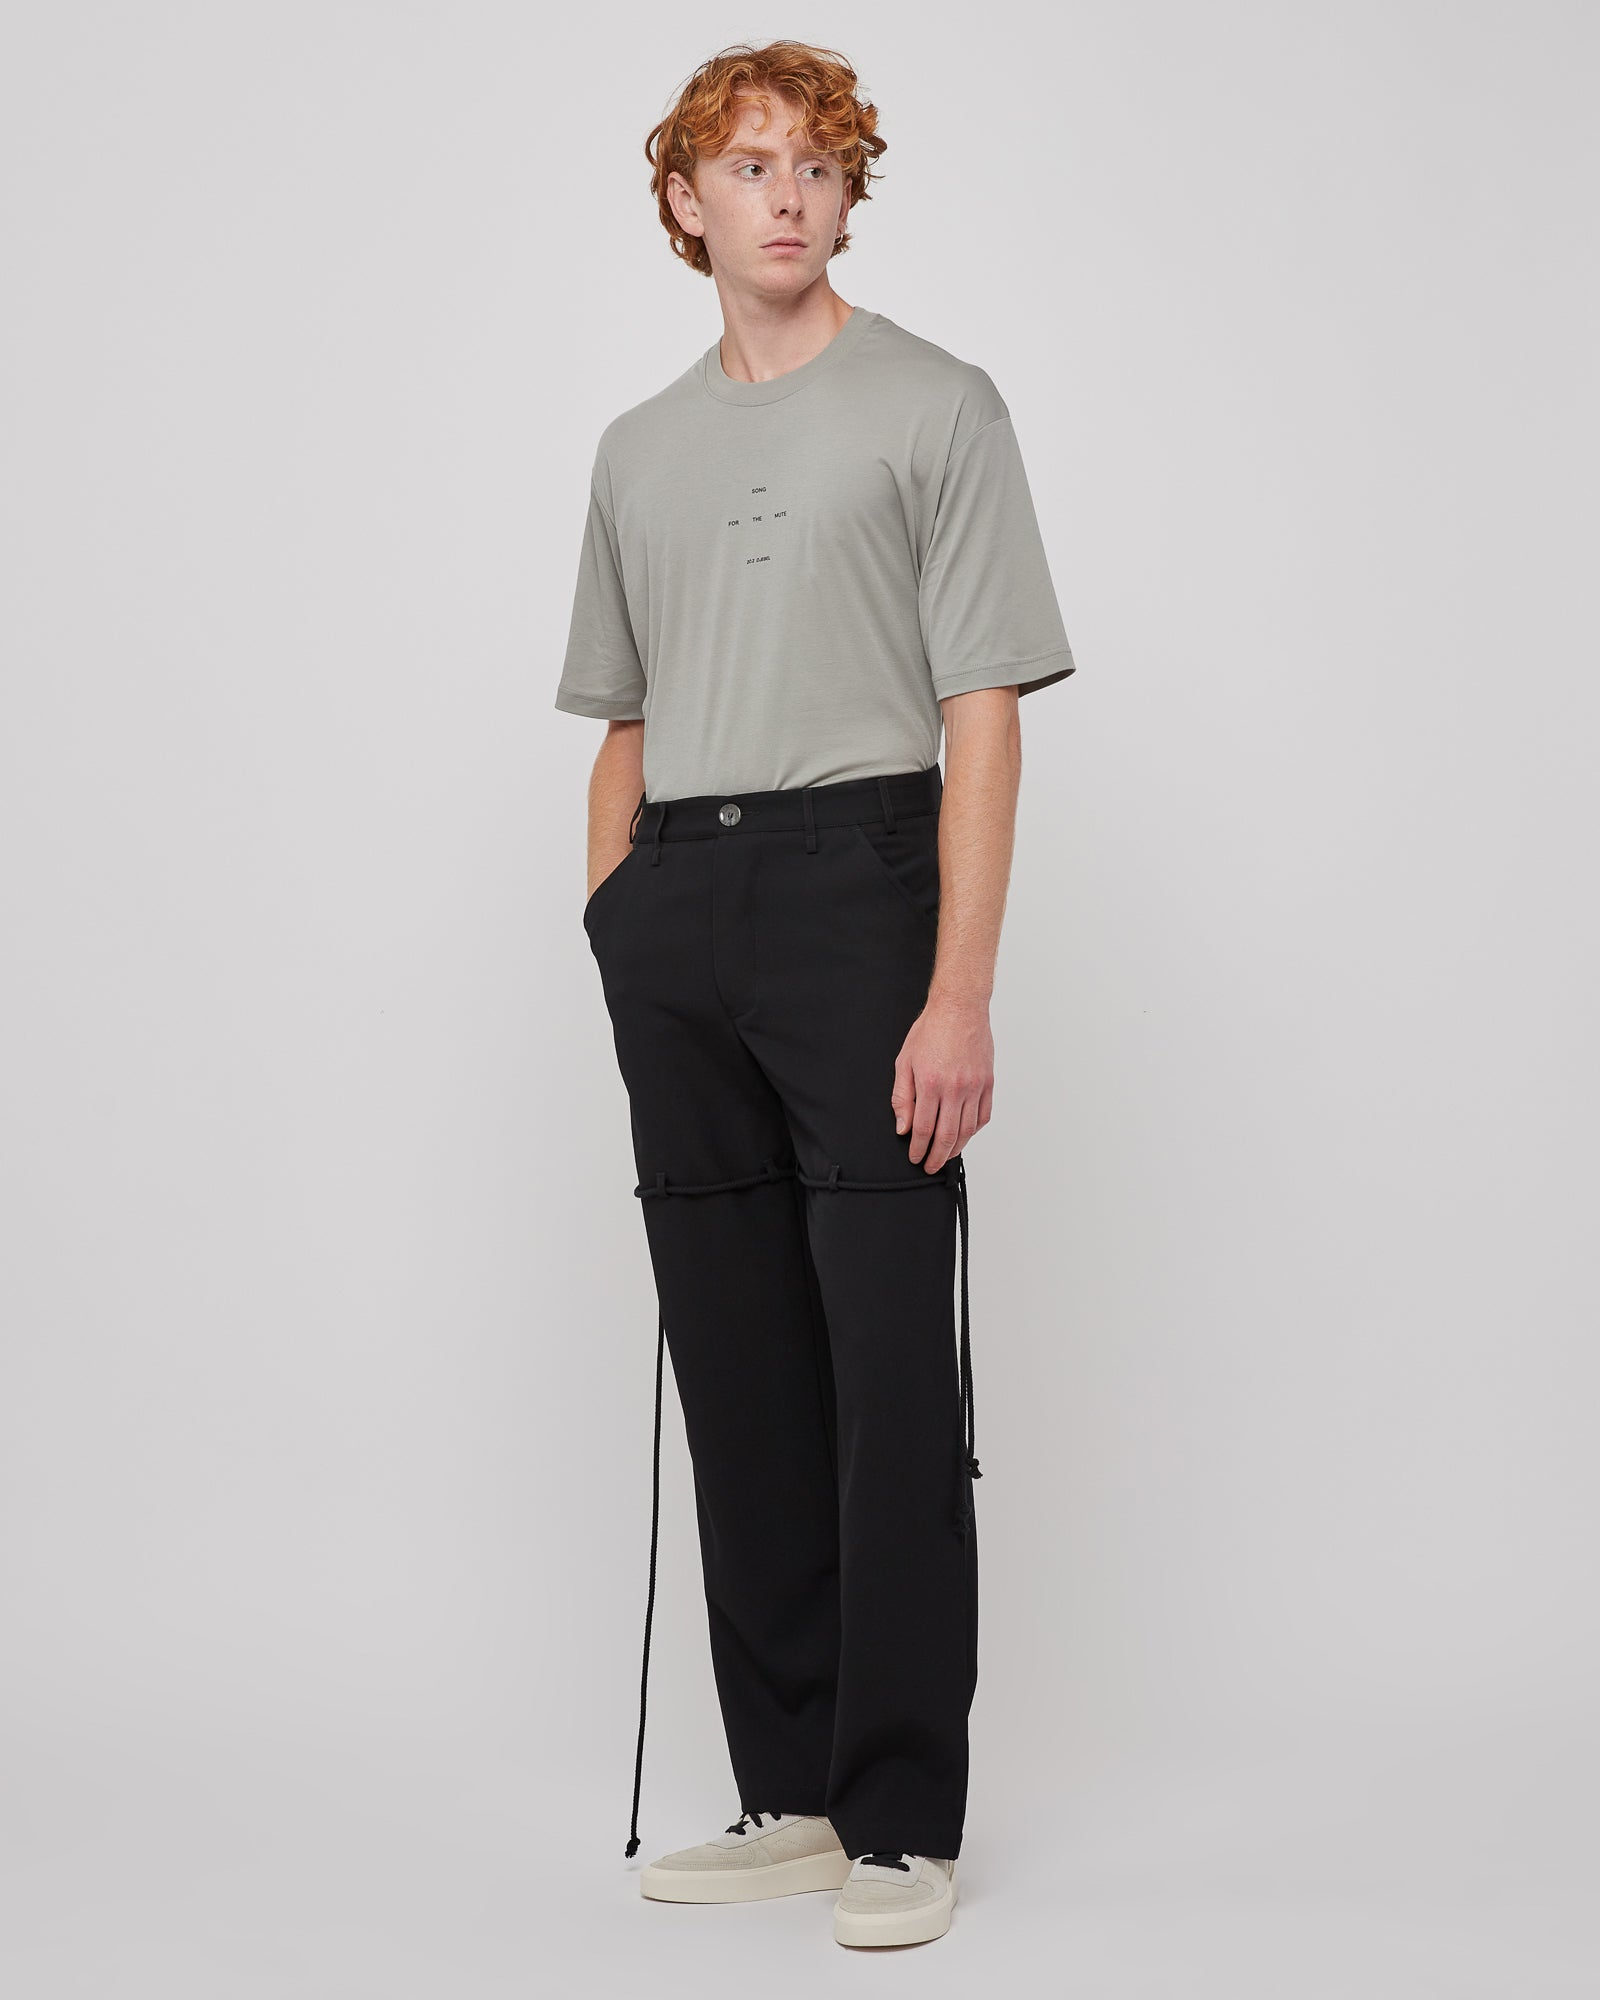 Dress Pant in Black